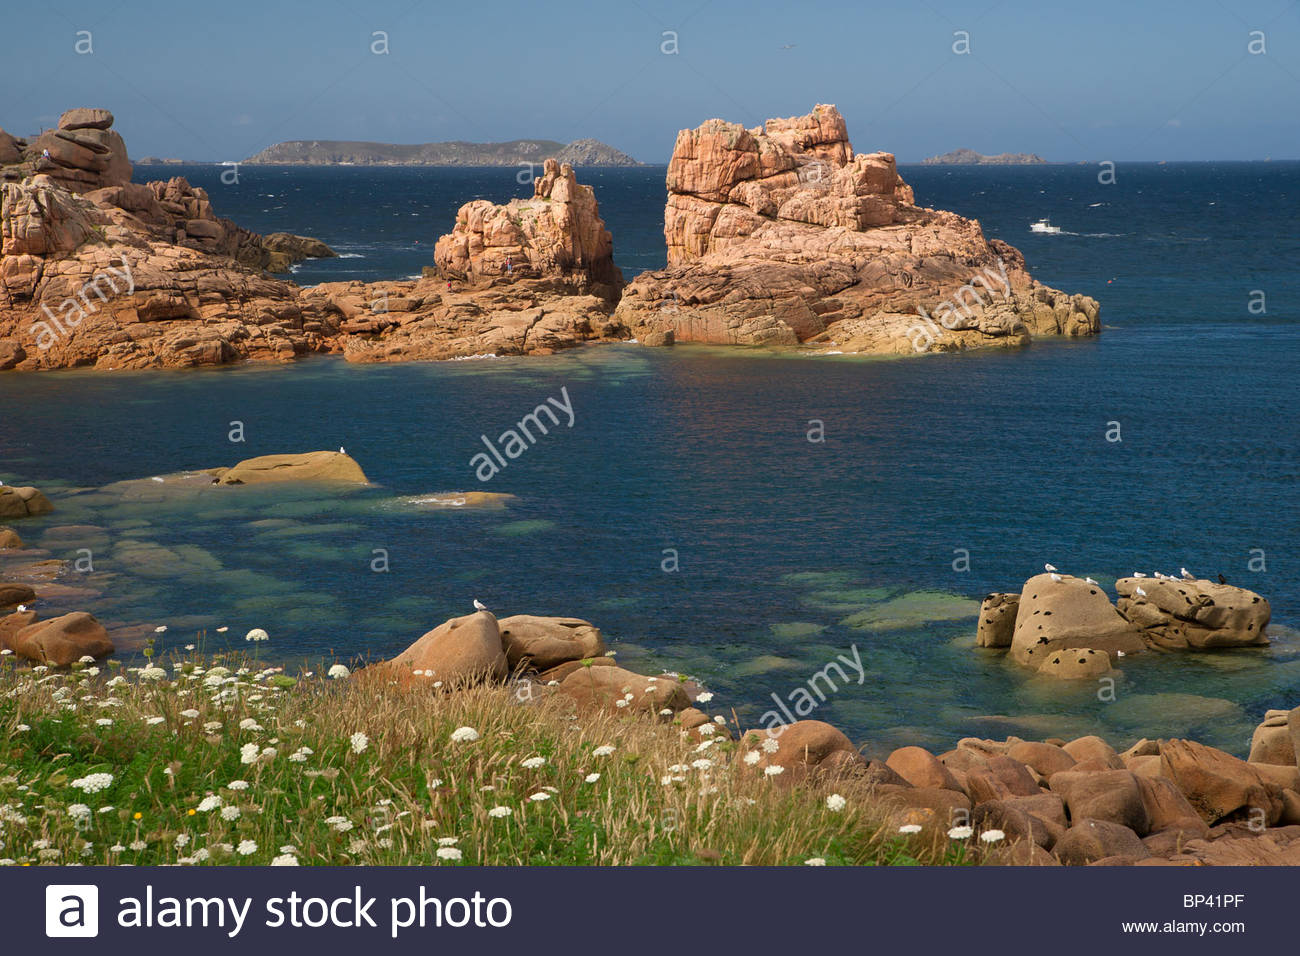 Côte de granit rose at Ploumanac'h near Perros Guirec in Brittany - France Stock Photo